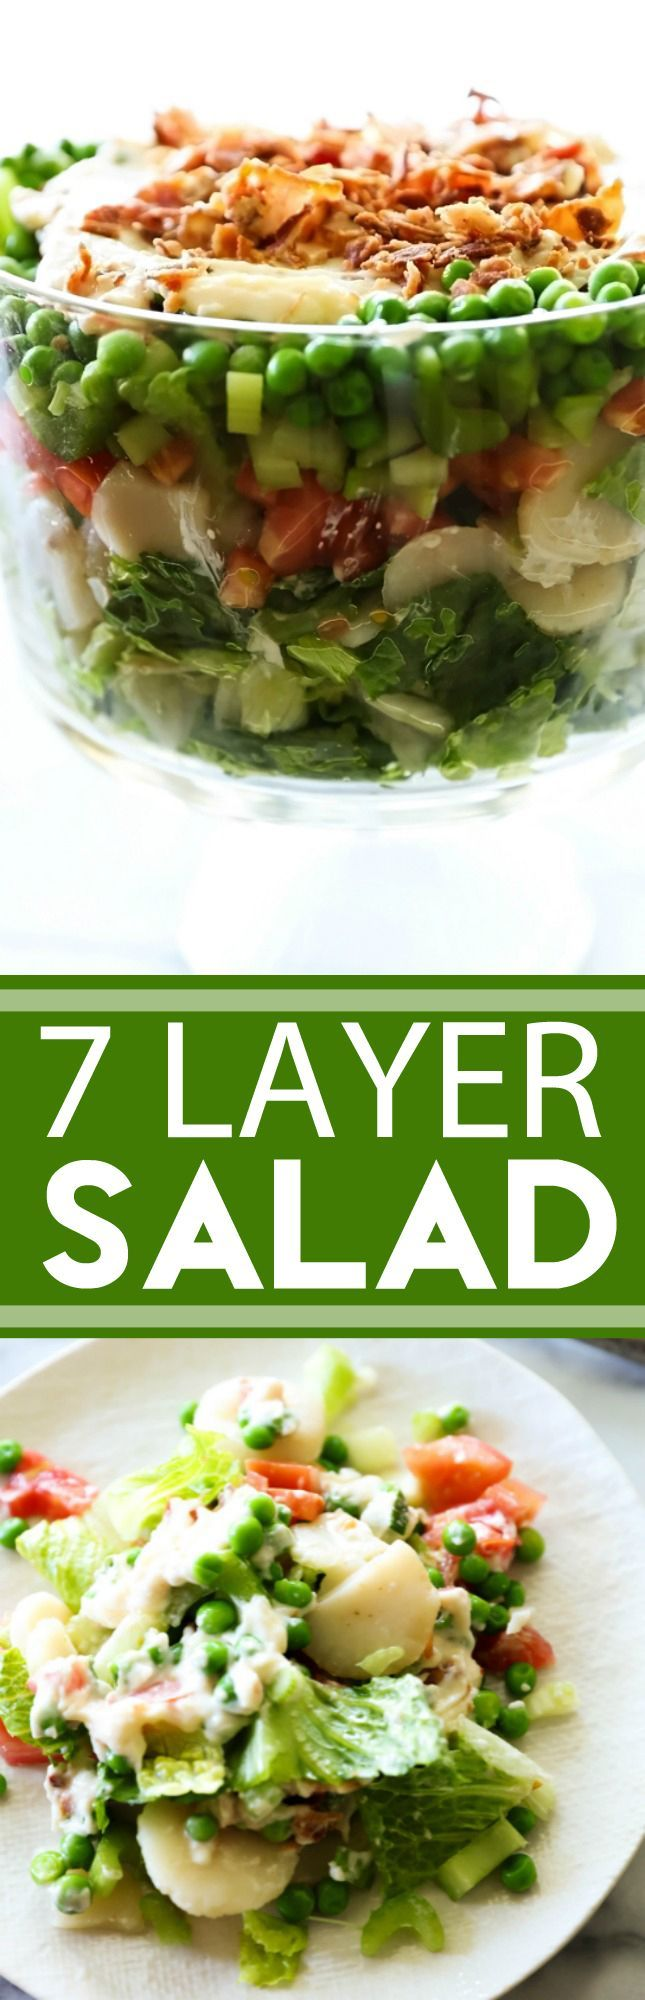 7 Layer Salad   Chef in Training